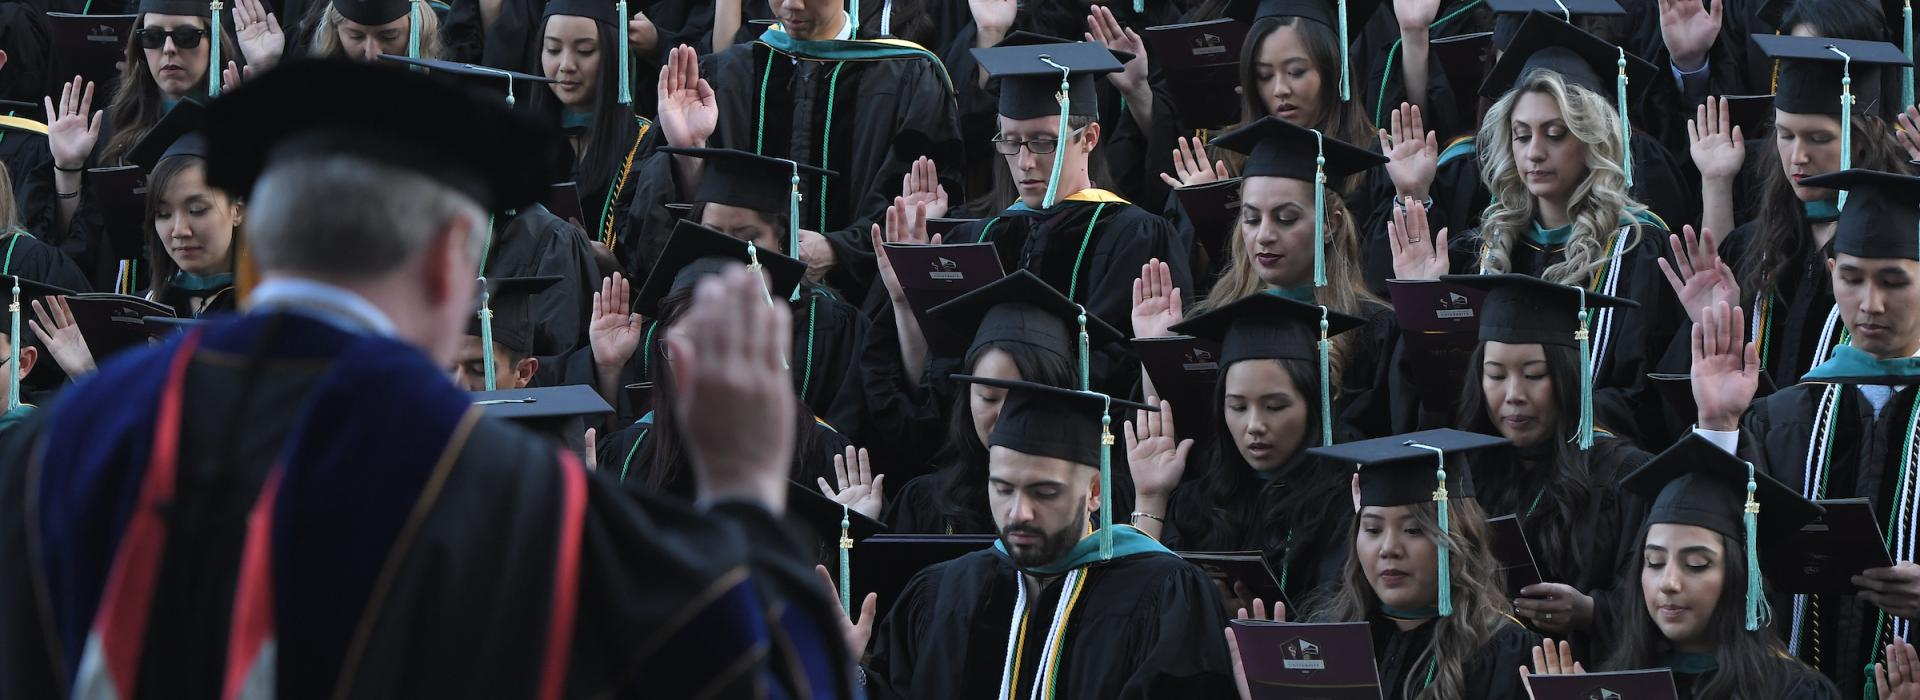 SCCO Graduates take the oath during their commencement ceremony